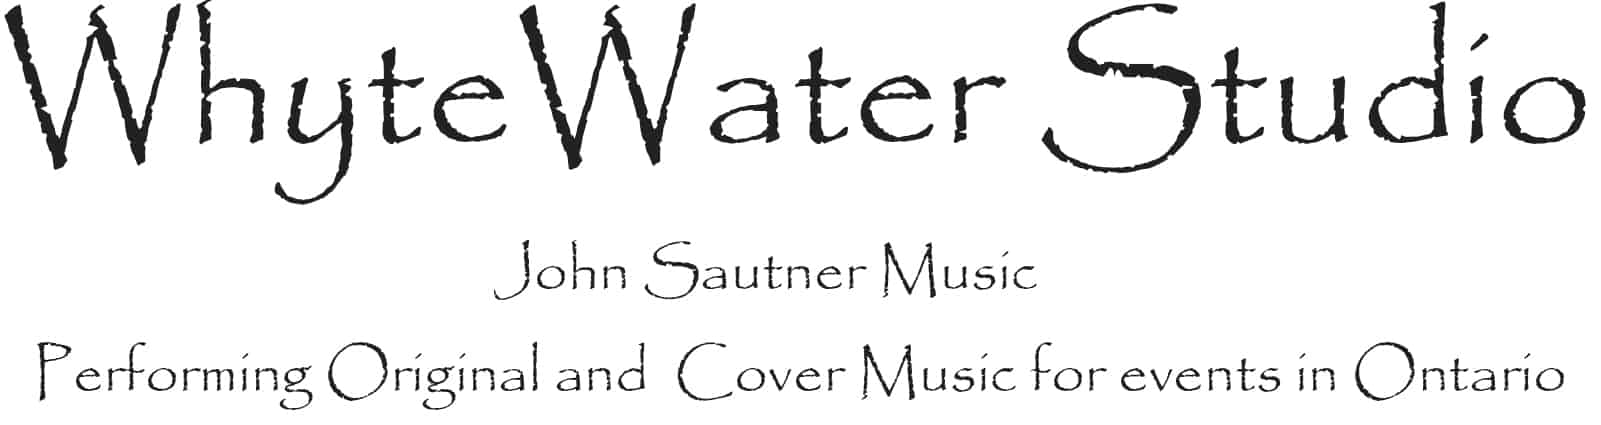 John Sautner and WhyteWater Studio